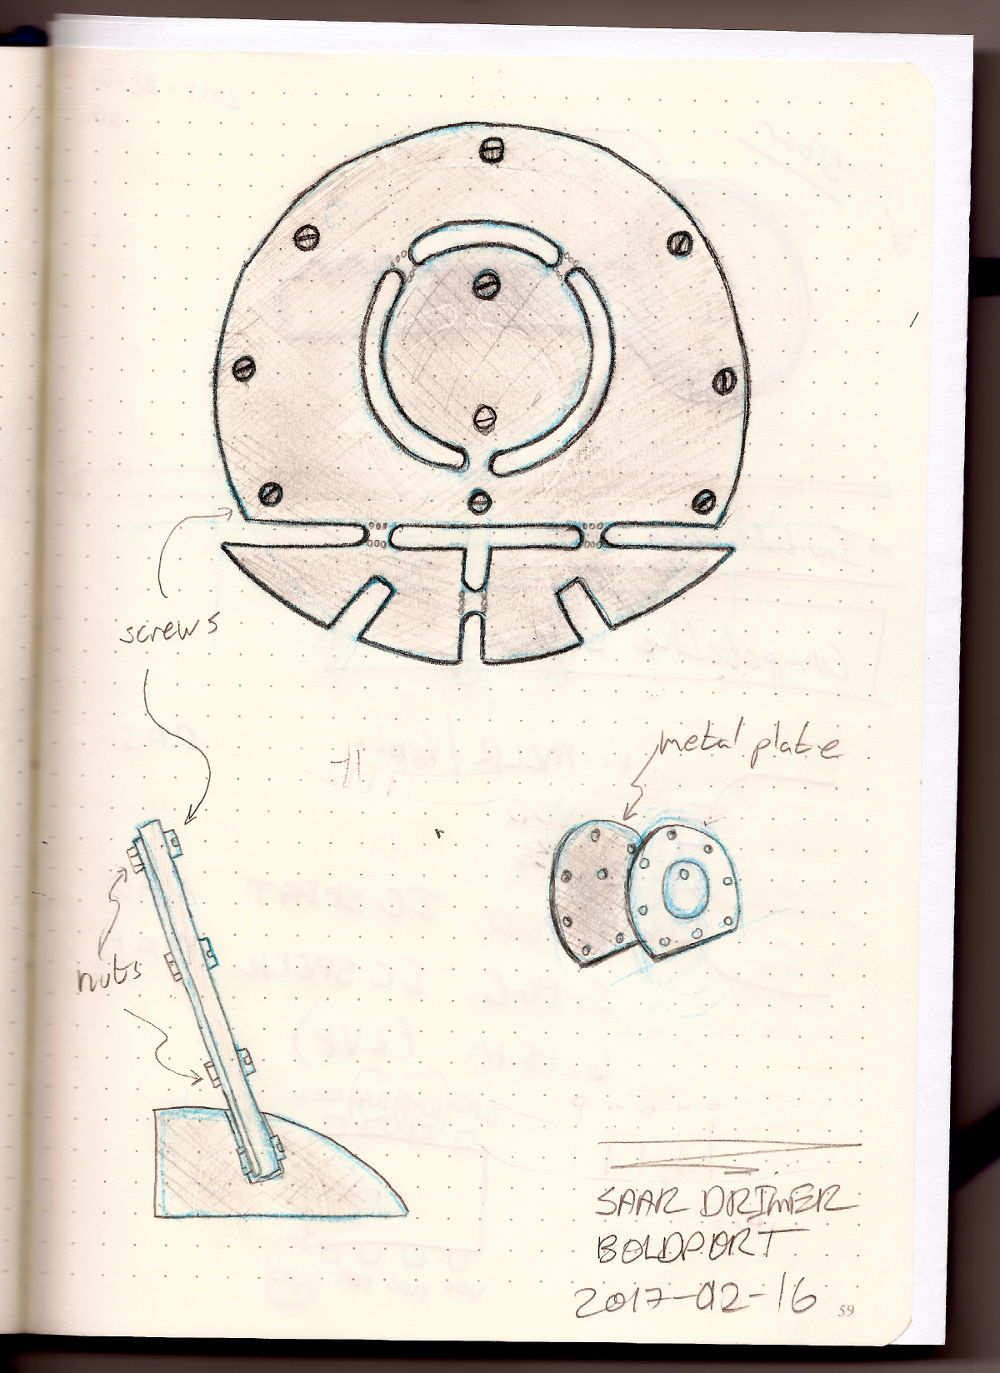 Second concept sketch. Adding metal backing would add weight and could solve stability, assembly, and reattachment of the medal.